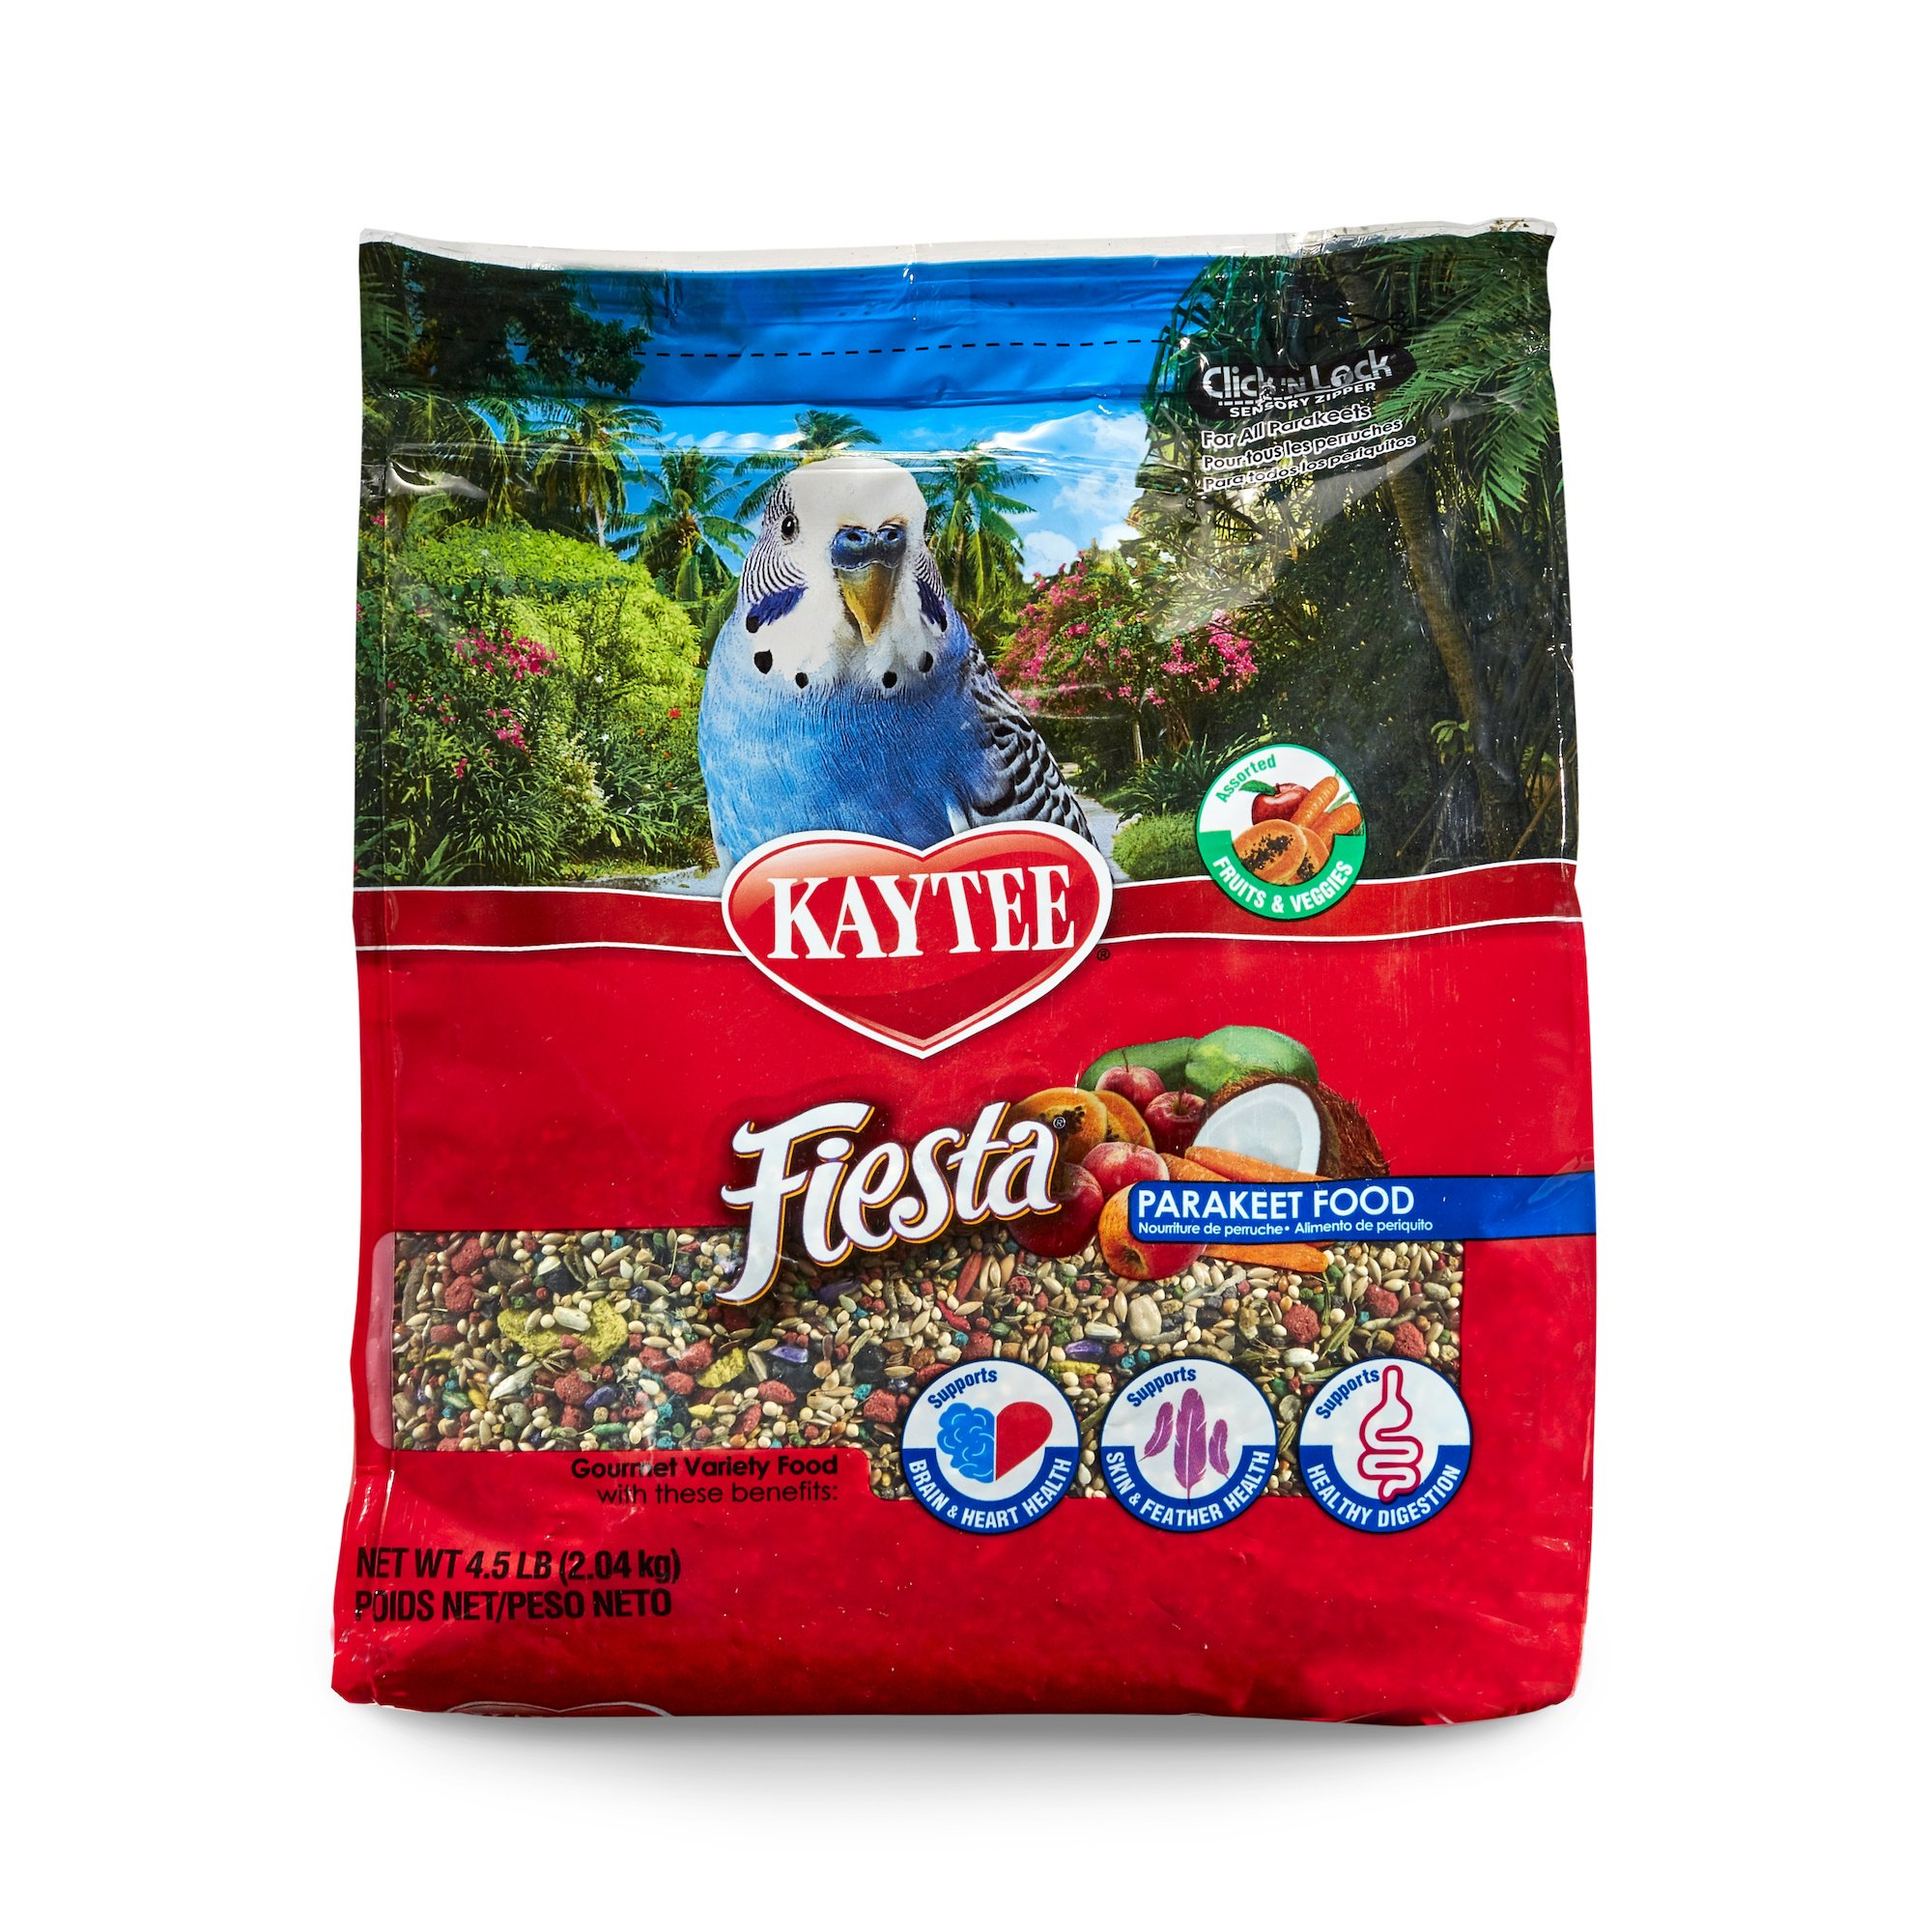 Kaytee Fiesta Parakeet Food, 4.5 Pounds by Kaytee